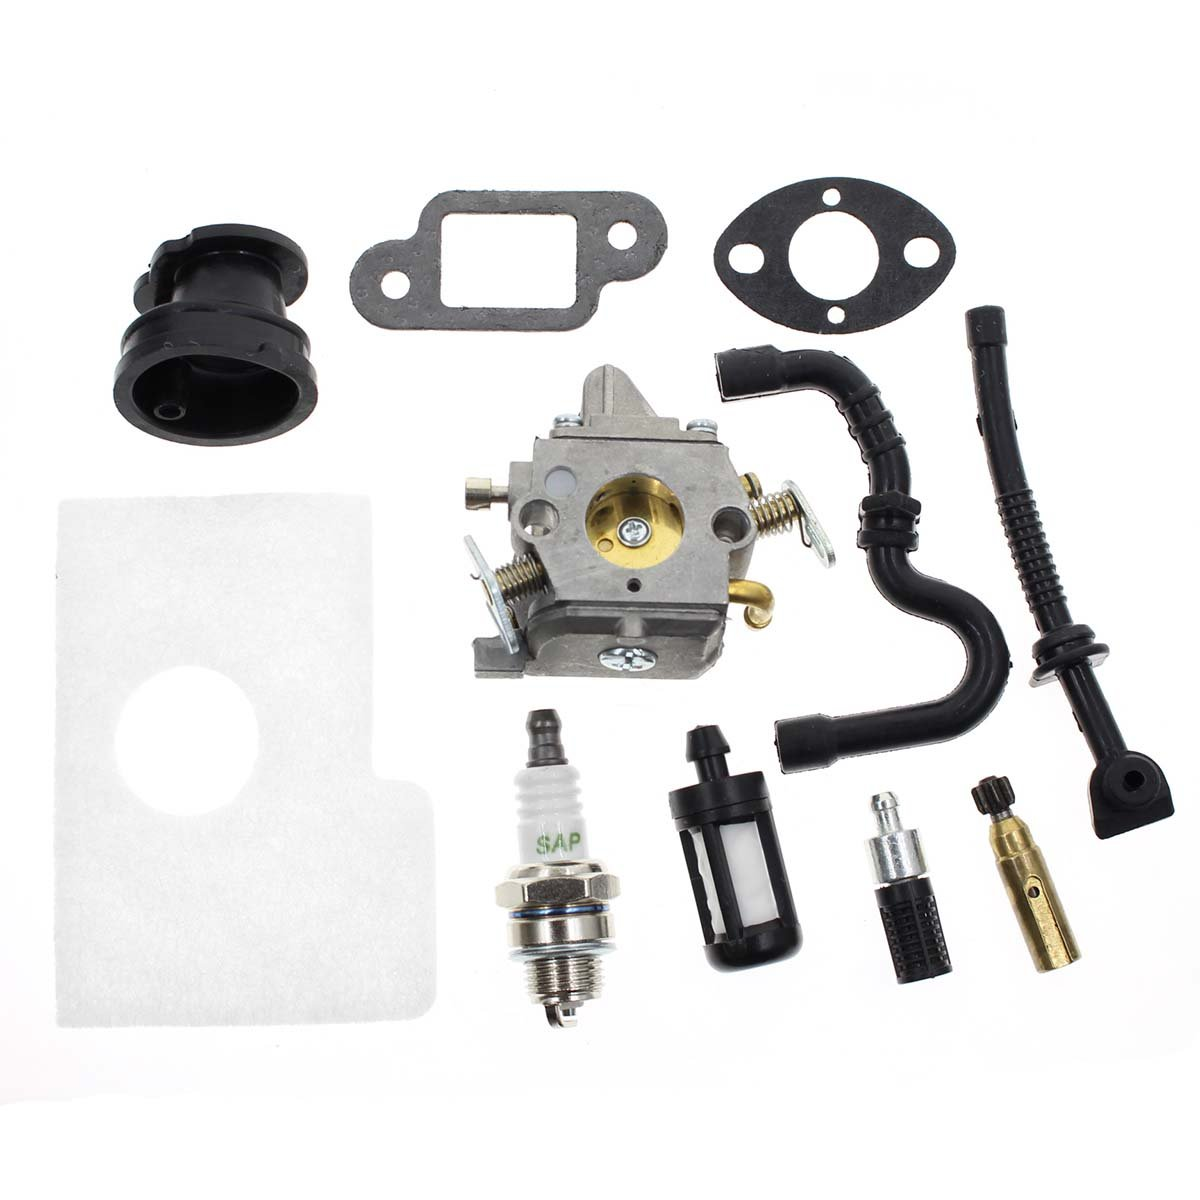 Carbhub MS170 Carburetor for Stihl MS170 MS180 017 018 Chainsaw with Air  Filter Fuel Oil Line Spark Plug, Replaces C1Q-S57 C1Q-S57A C1Q-S57B 1130  120